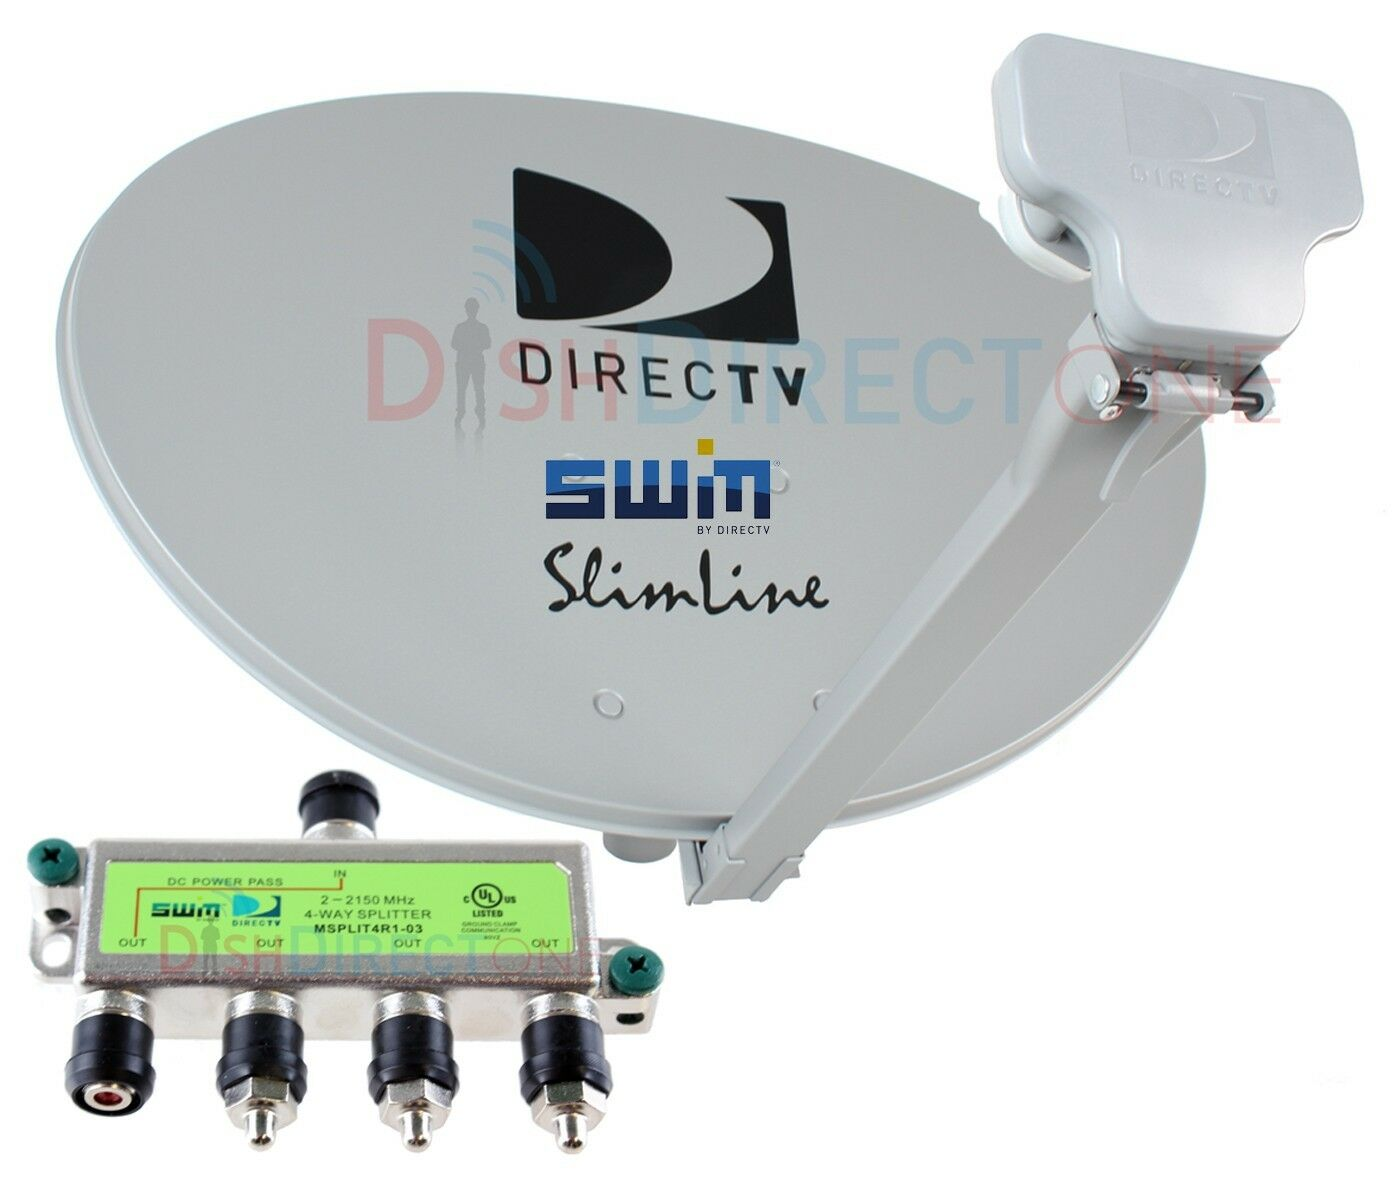 DIRECTV DIRECT TV SWM3 LNB KAKU SlimLine Satellite Dish